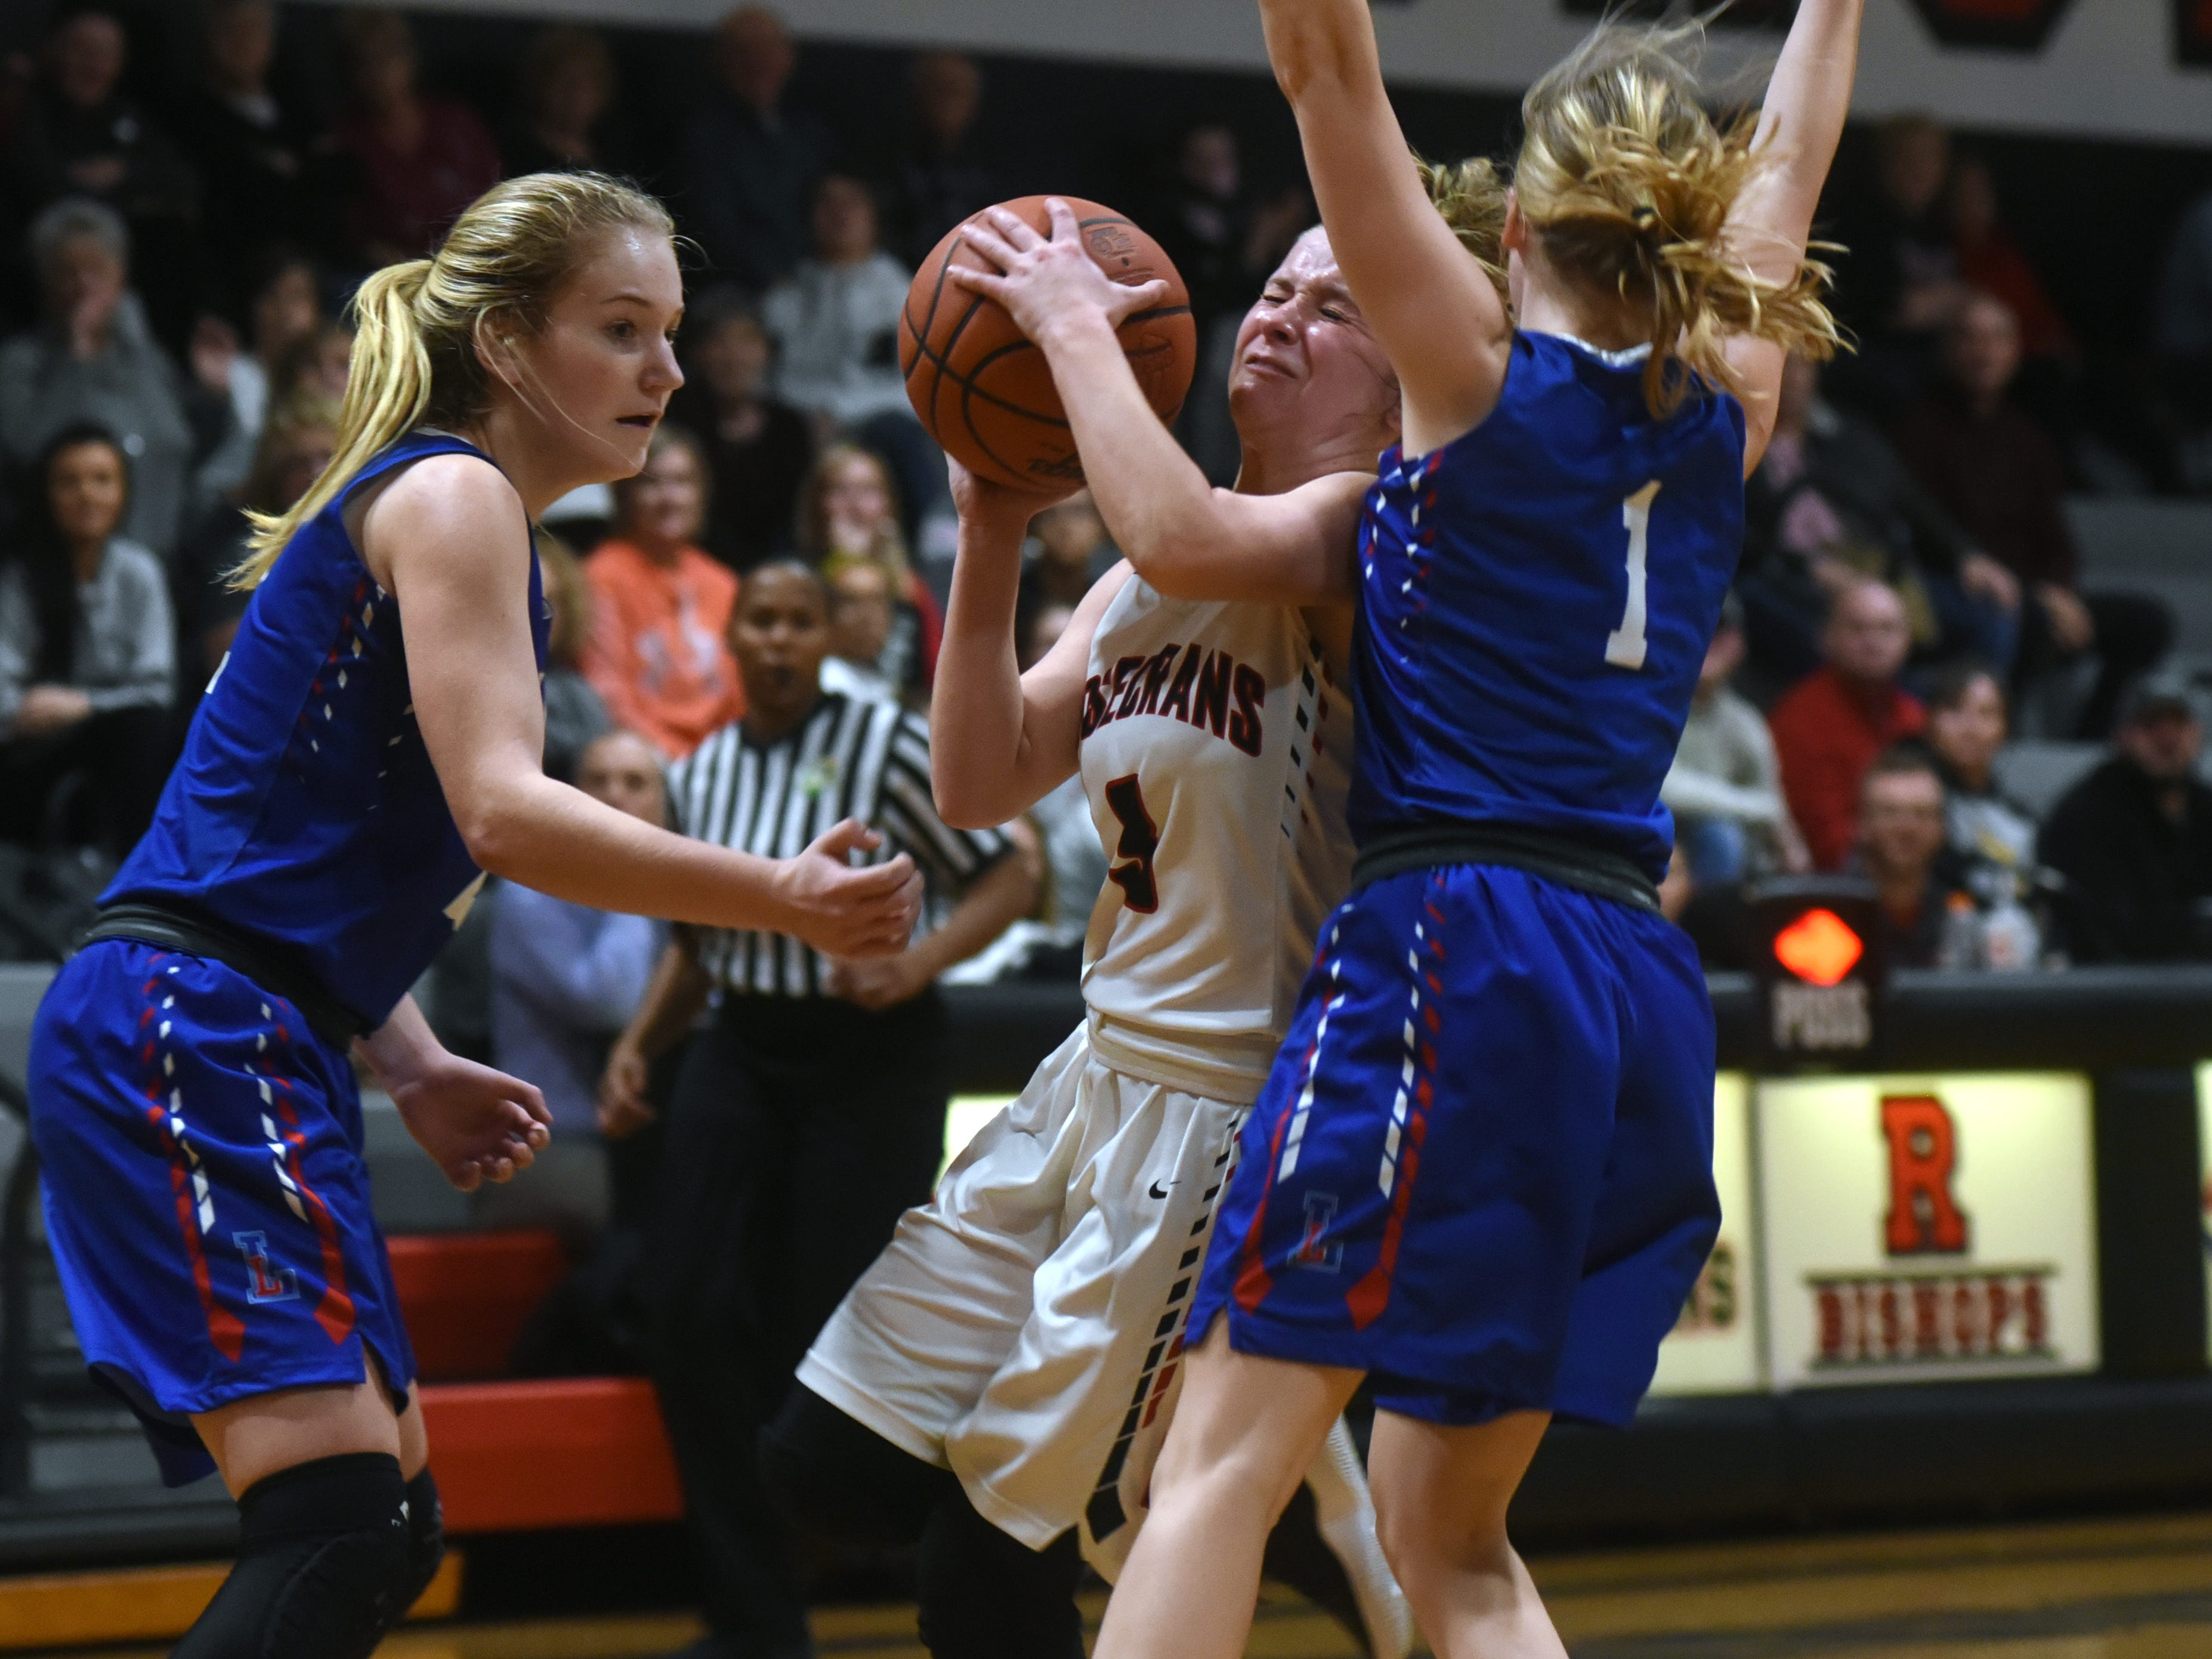 Rosecrans' Claire Creeks drives into traffic against Lakewood on Monday night at Rogge Gymnasium.